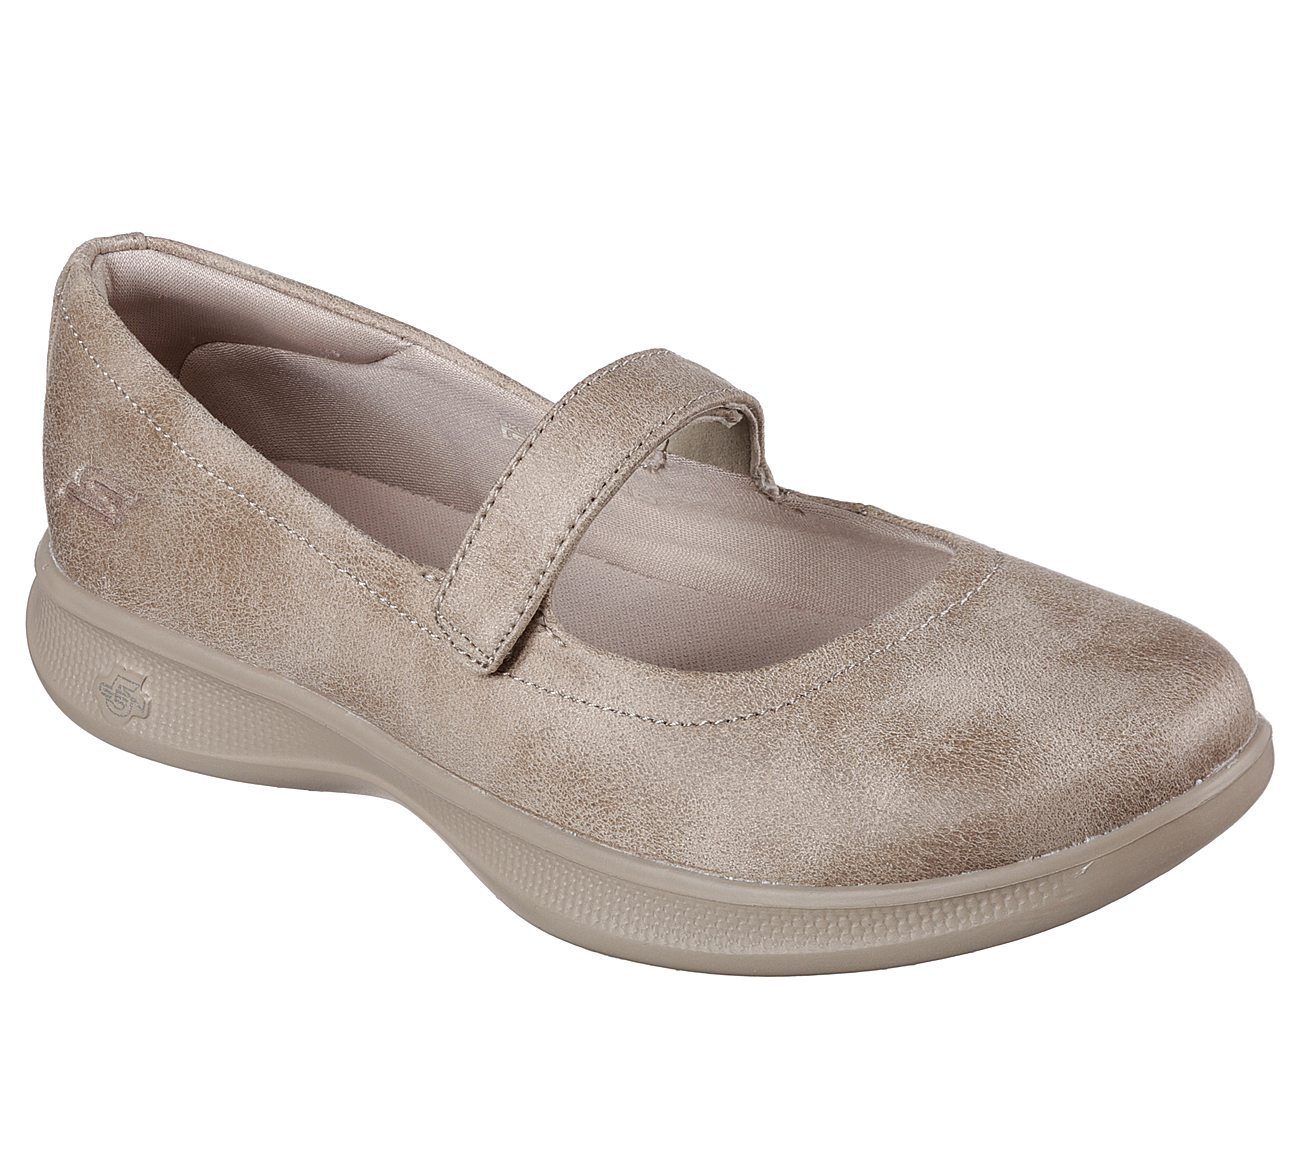 Skechers GO STEP Lite - Enchanting. $62.00. Hover to zoom